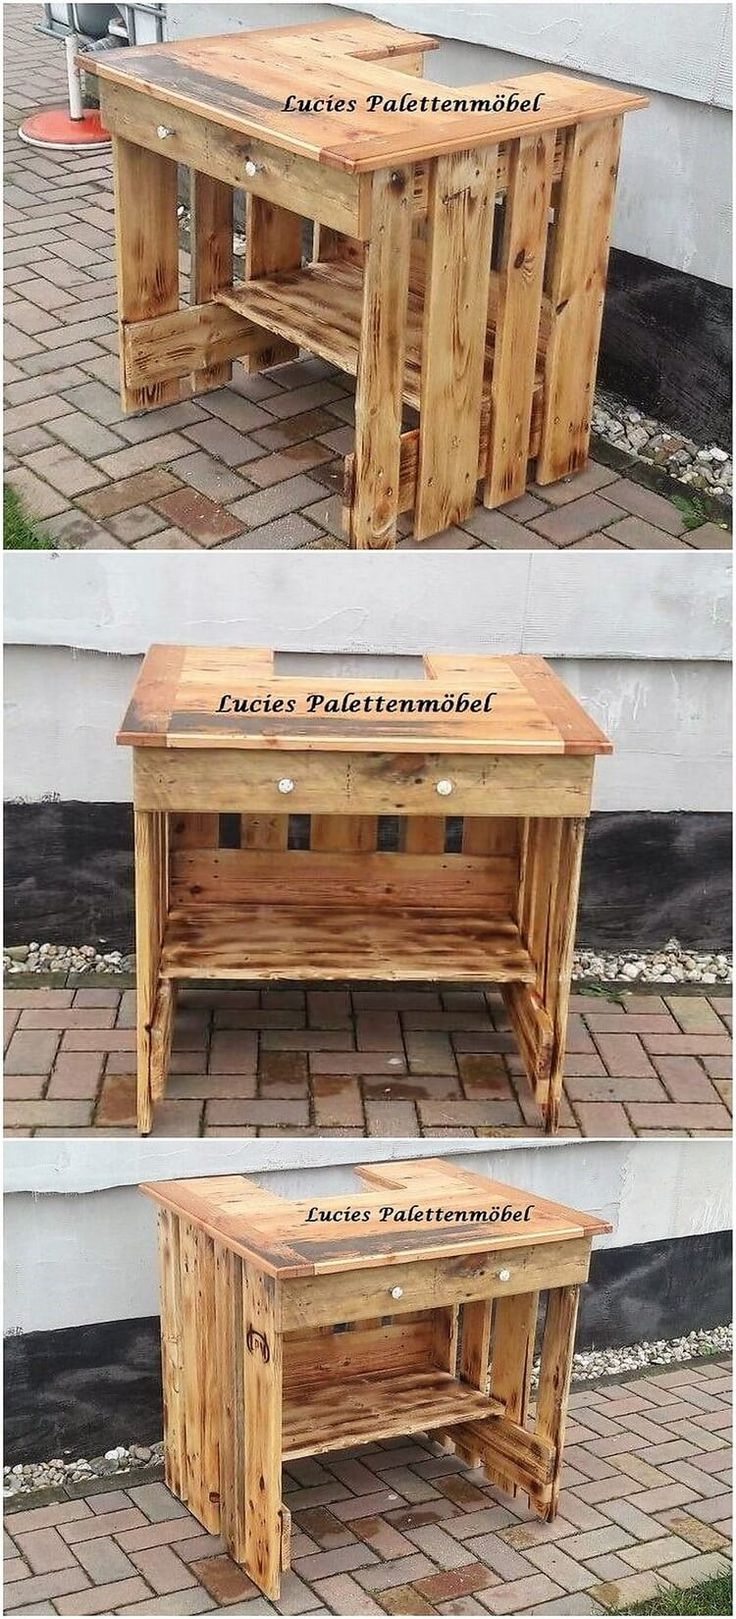 This is another one of the creative piece of wood pallet designing which you can amazingly set in your garden or lounge area. This wood pallet counter table design is meant as best to be used for the decoration placement ideas. It do has the blend of drawers right into it.